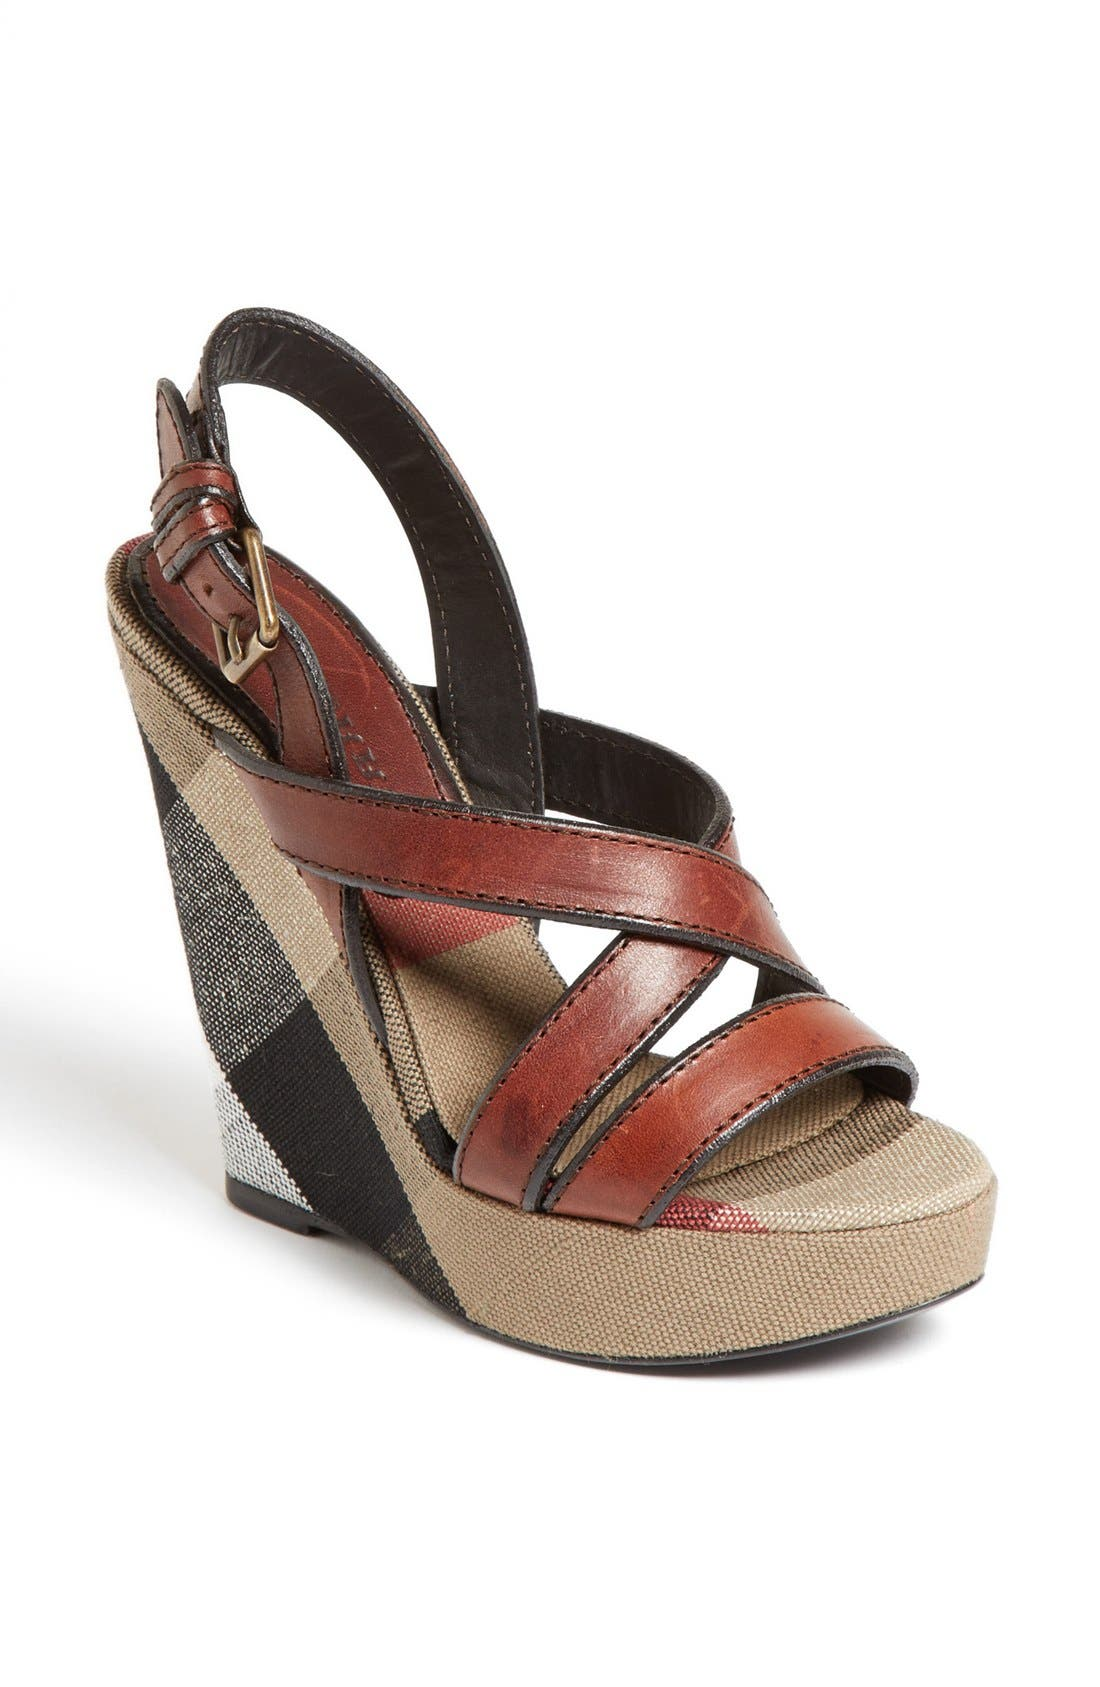 Main Image - Burberry 'Warlow' Leather Sandal